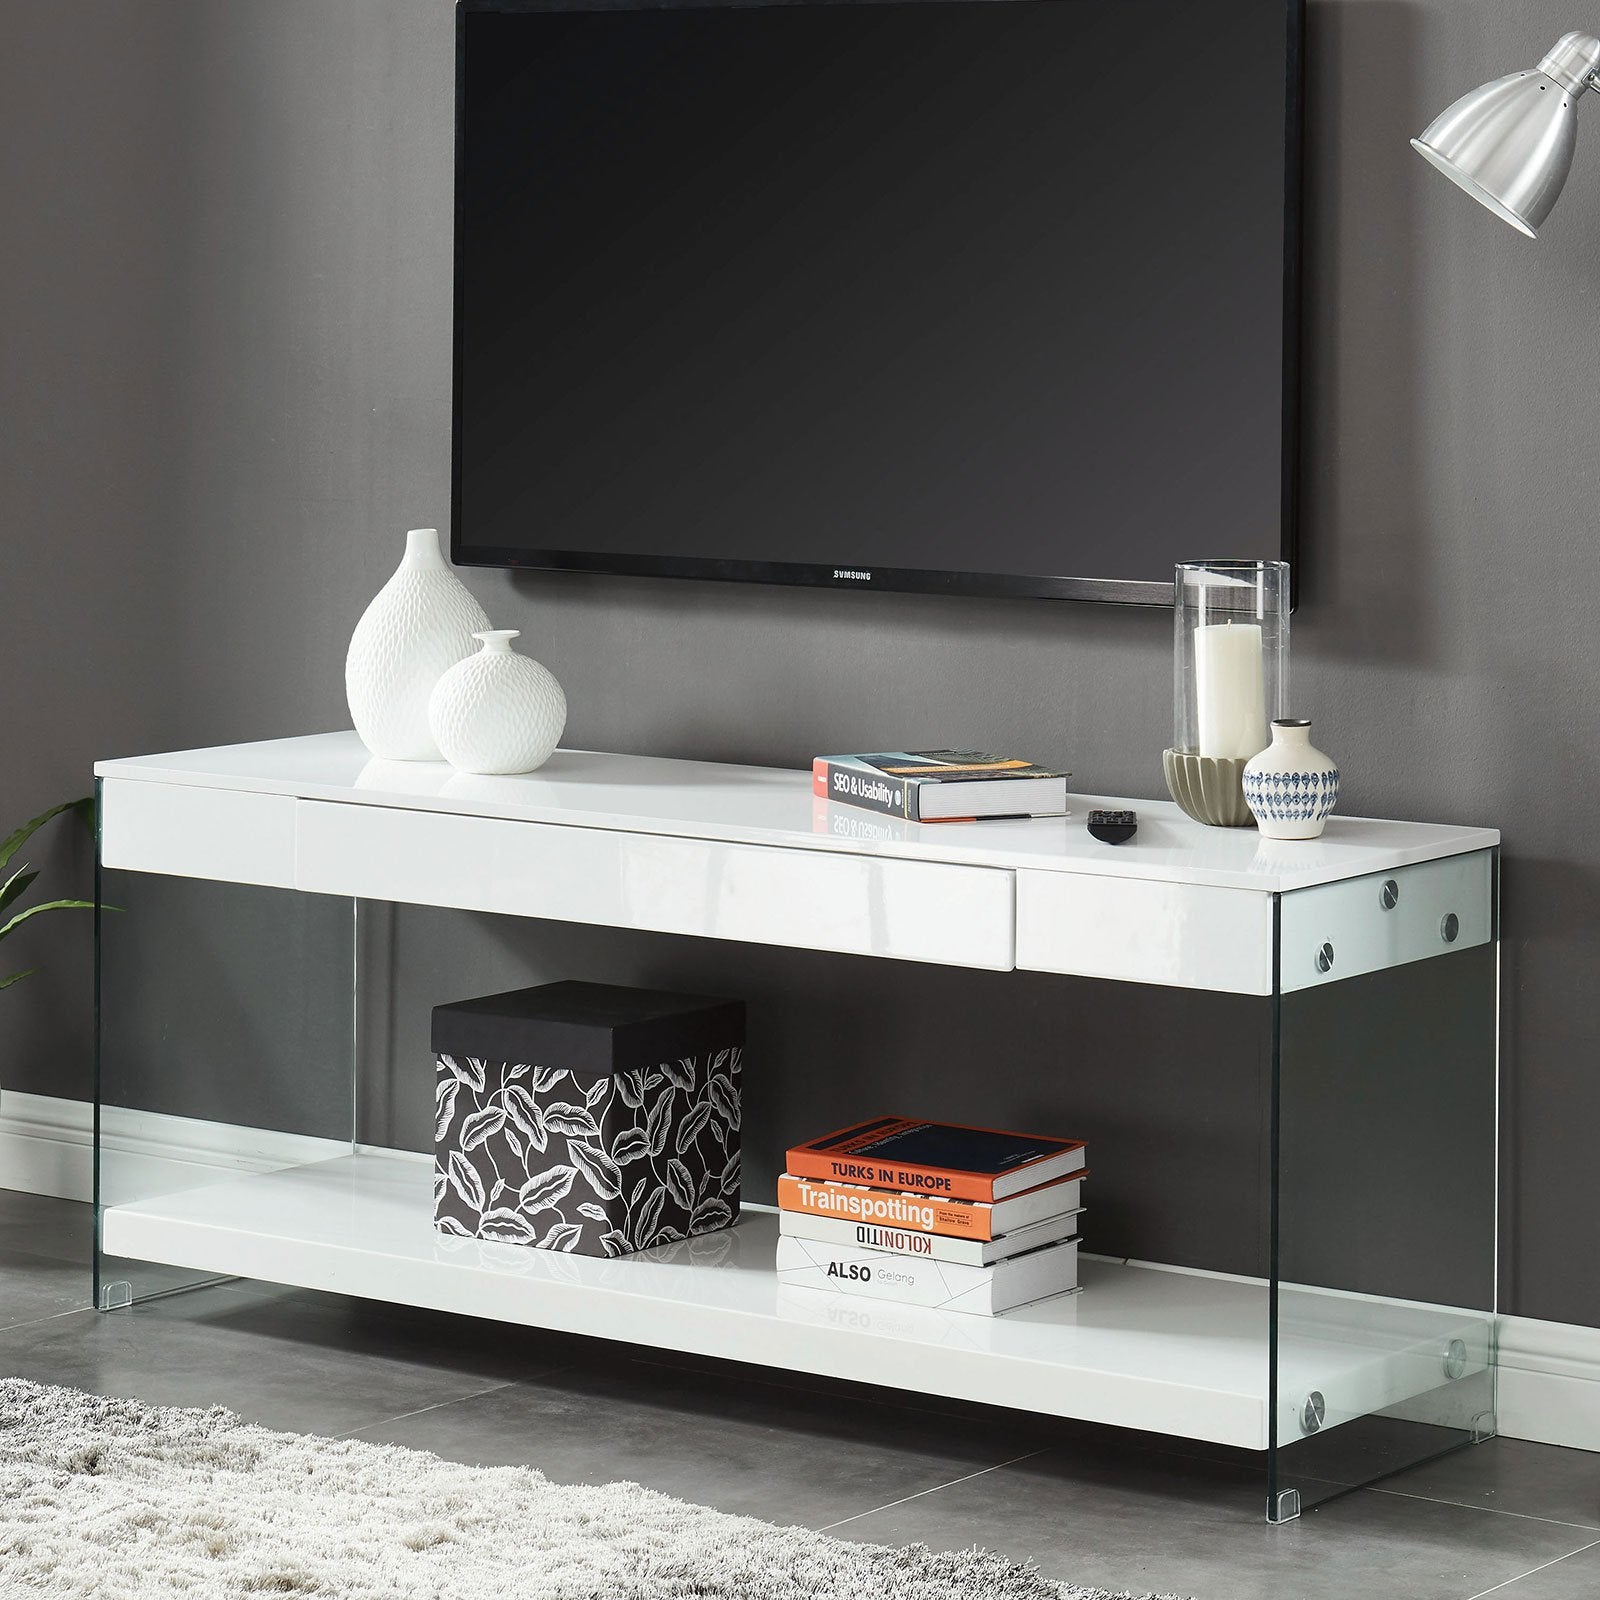 "Sabugal Contemporary 60"" TV Stand - InteriorDesignsToGo.com"